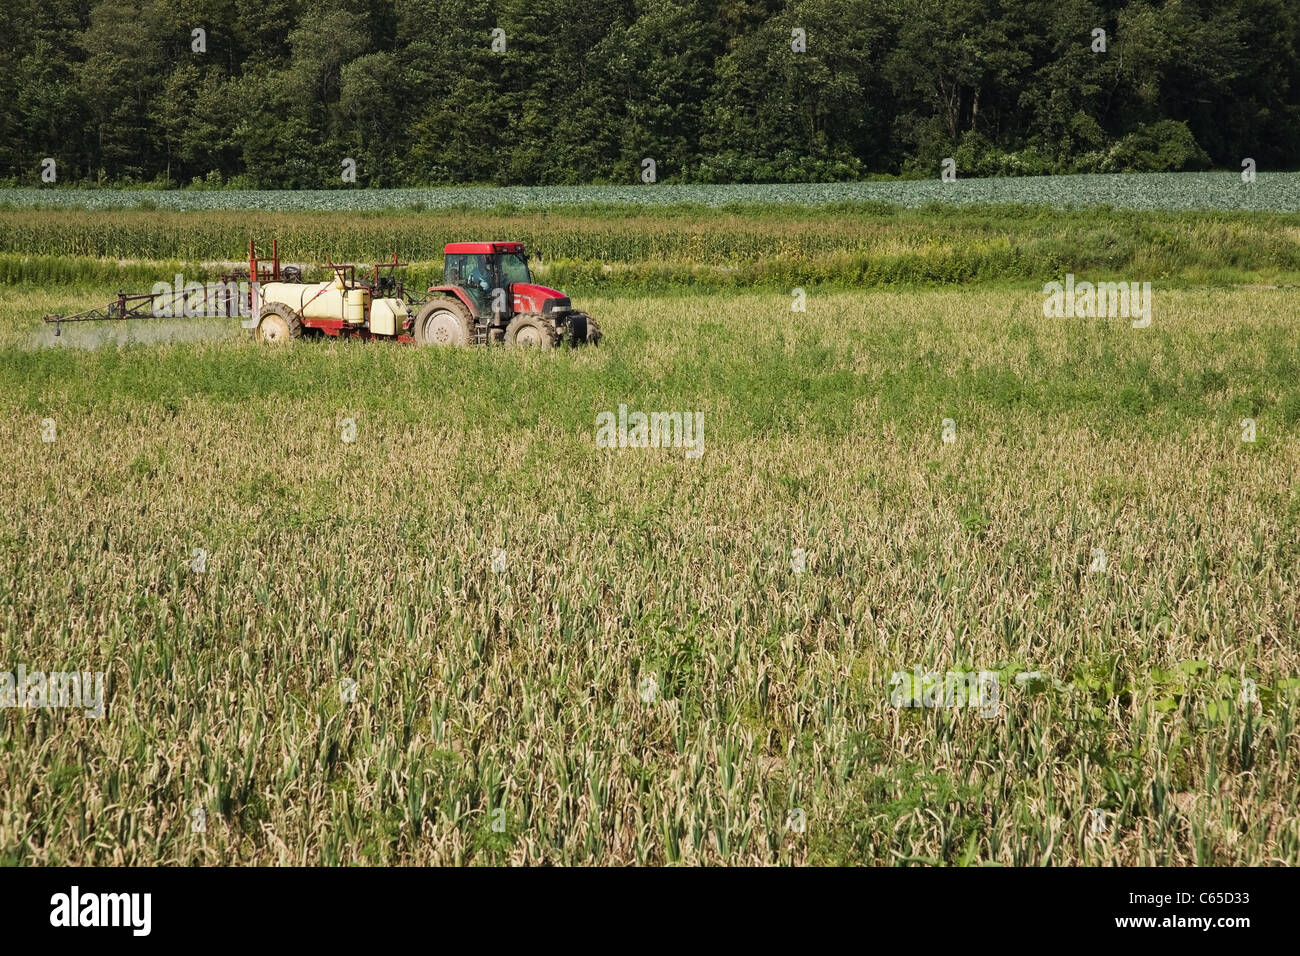 Tractor spraying field - Stock Image